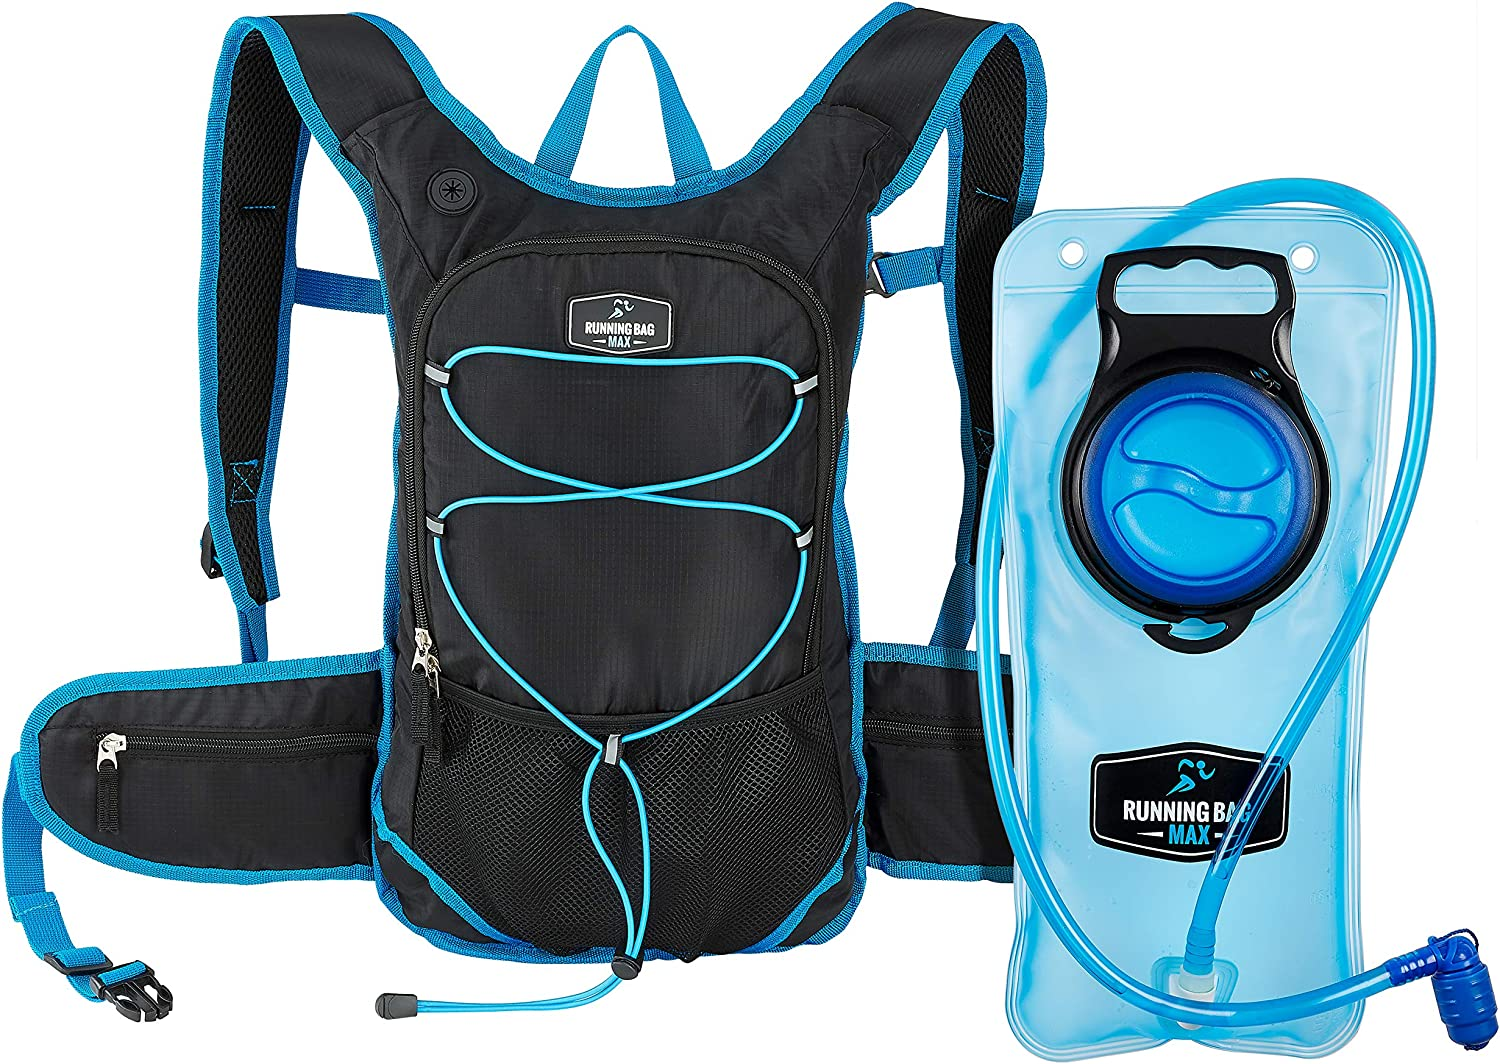 Running Bag Max Hydration Backpack With 2L Bladder and Thermal Insulated Pocket Keeps Water or Other Liquids Cool up to 4 Hours for Running, Hiking, Camping, Cycling, any Outdoor Activity, in Black